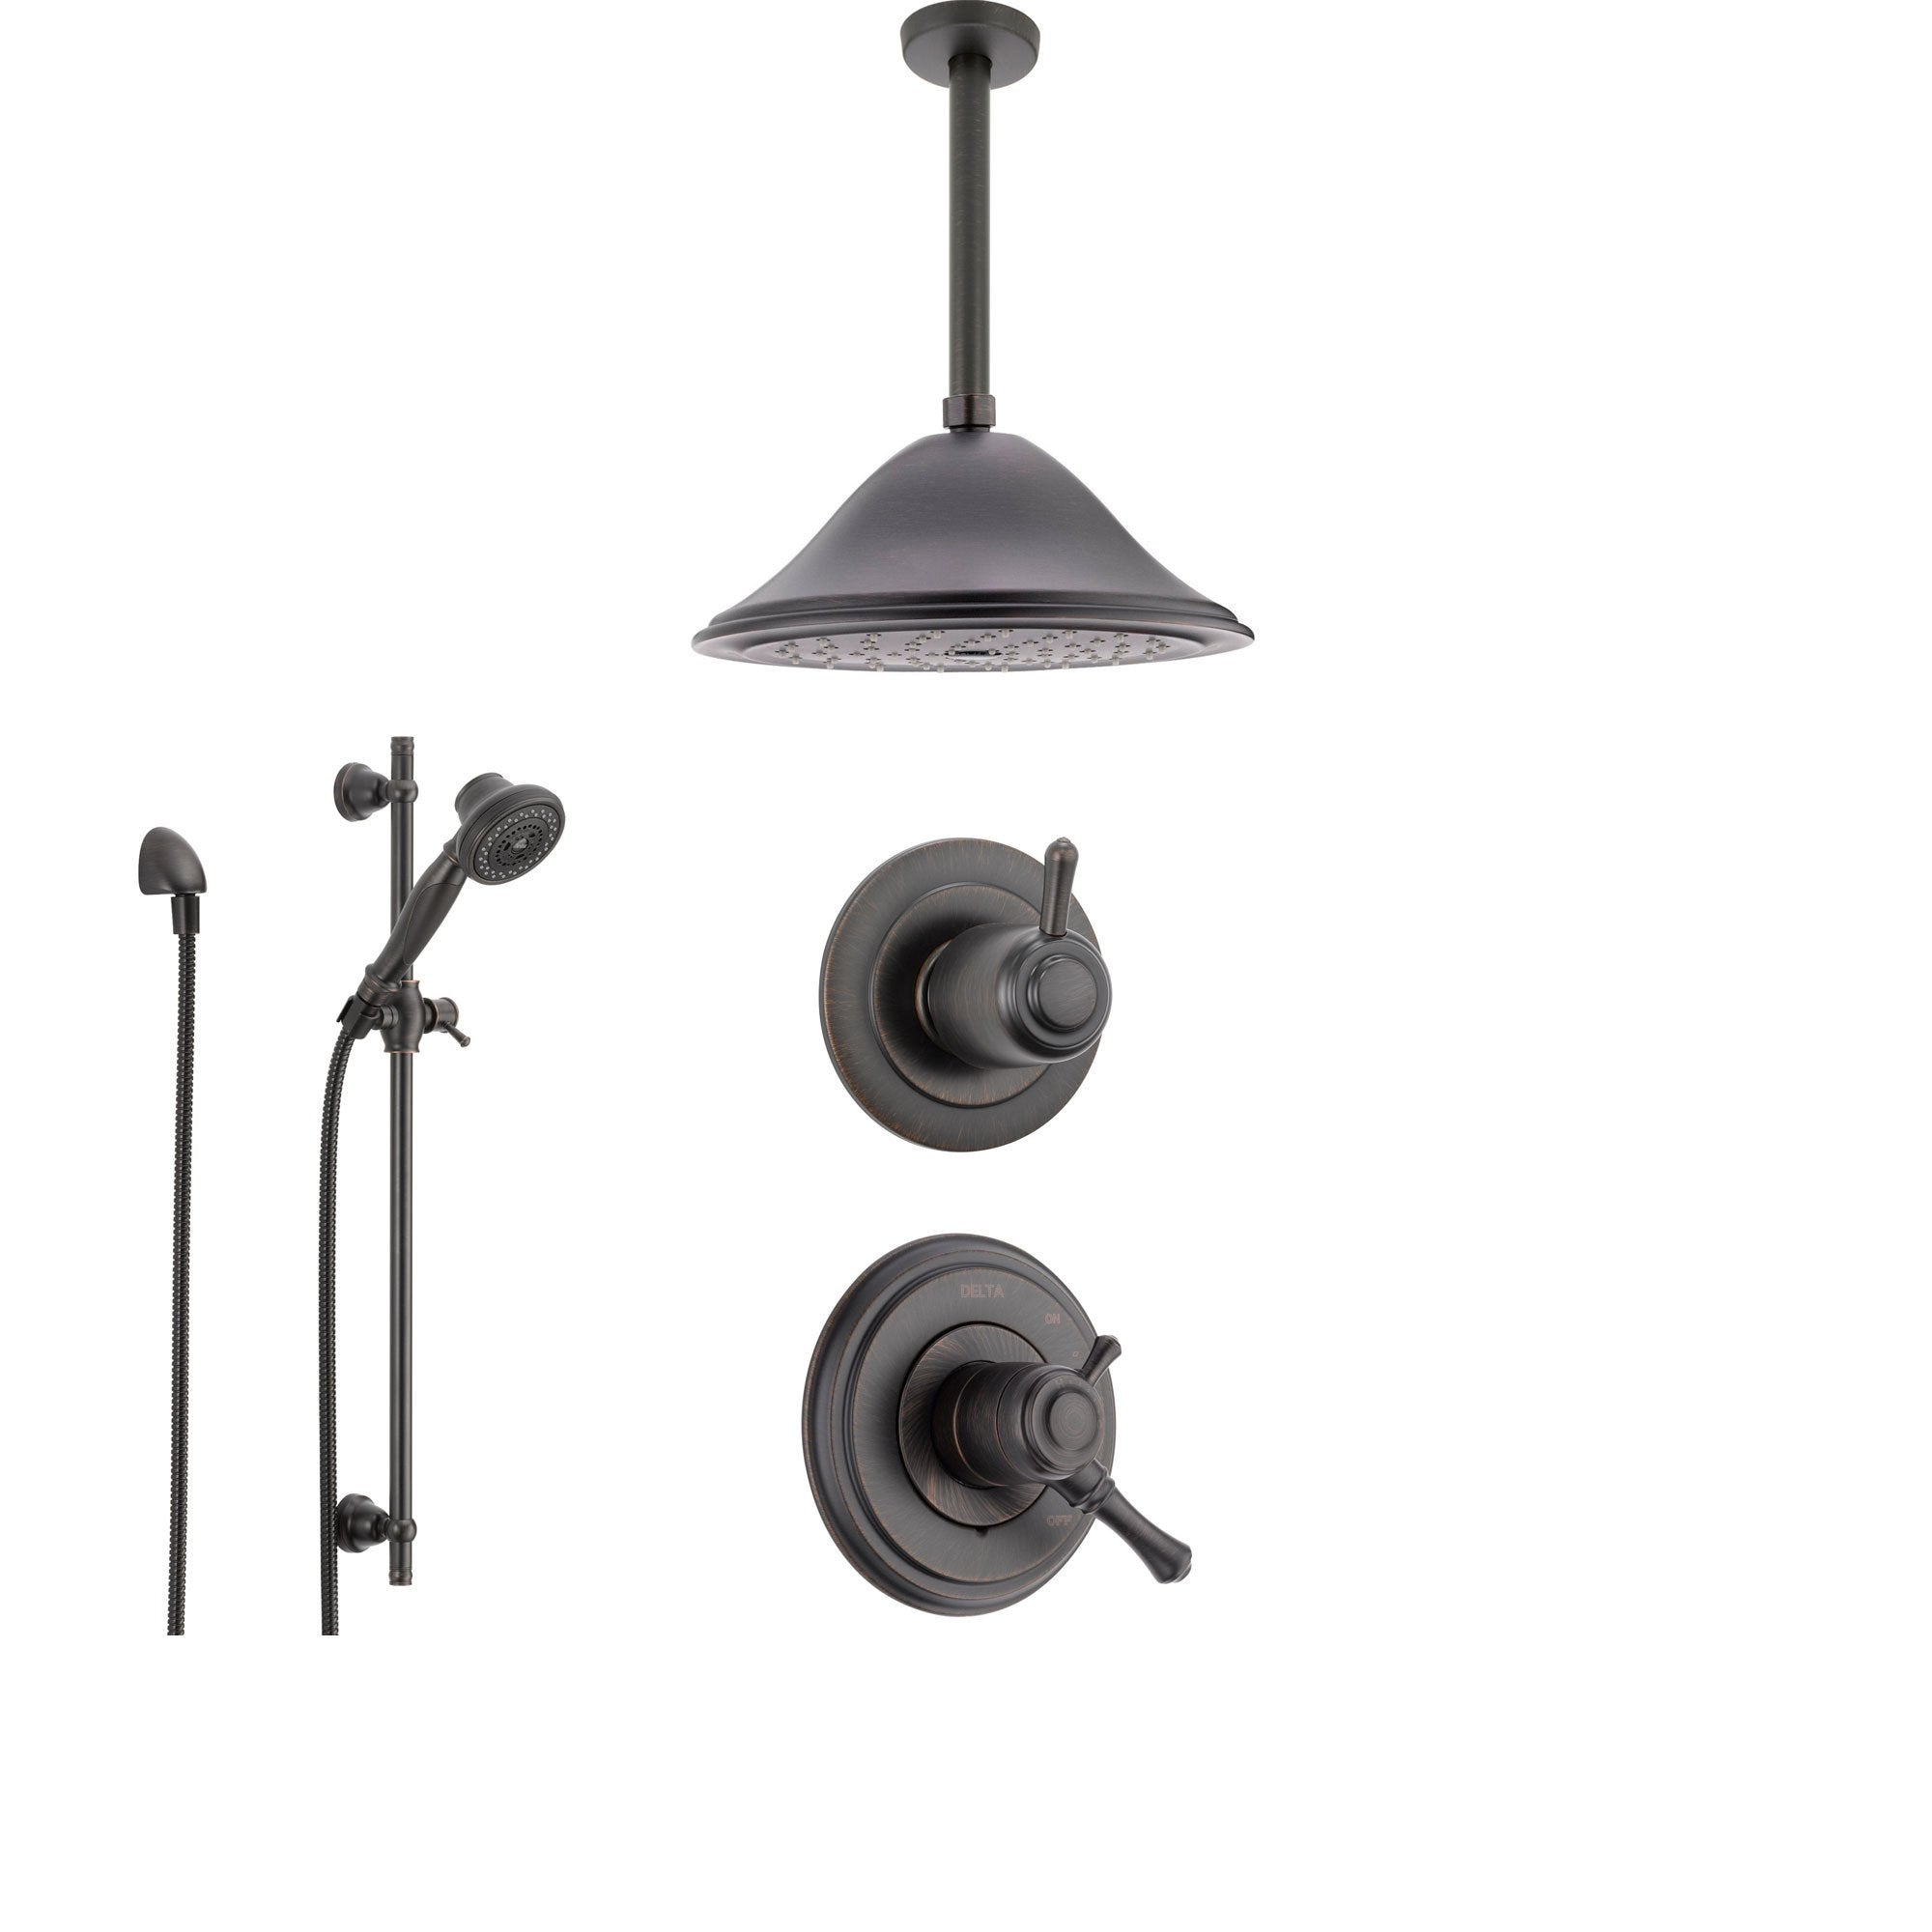 Delta Cassidy Venetian Bronze Shower System with Dual Control Shower Handle, 3-setting Diverter, Large Ceiling Mount Rain Showerhead, and Handheld Shower SS179784RB